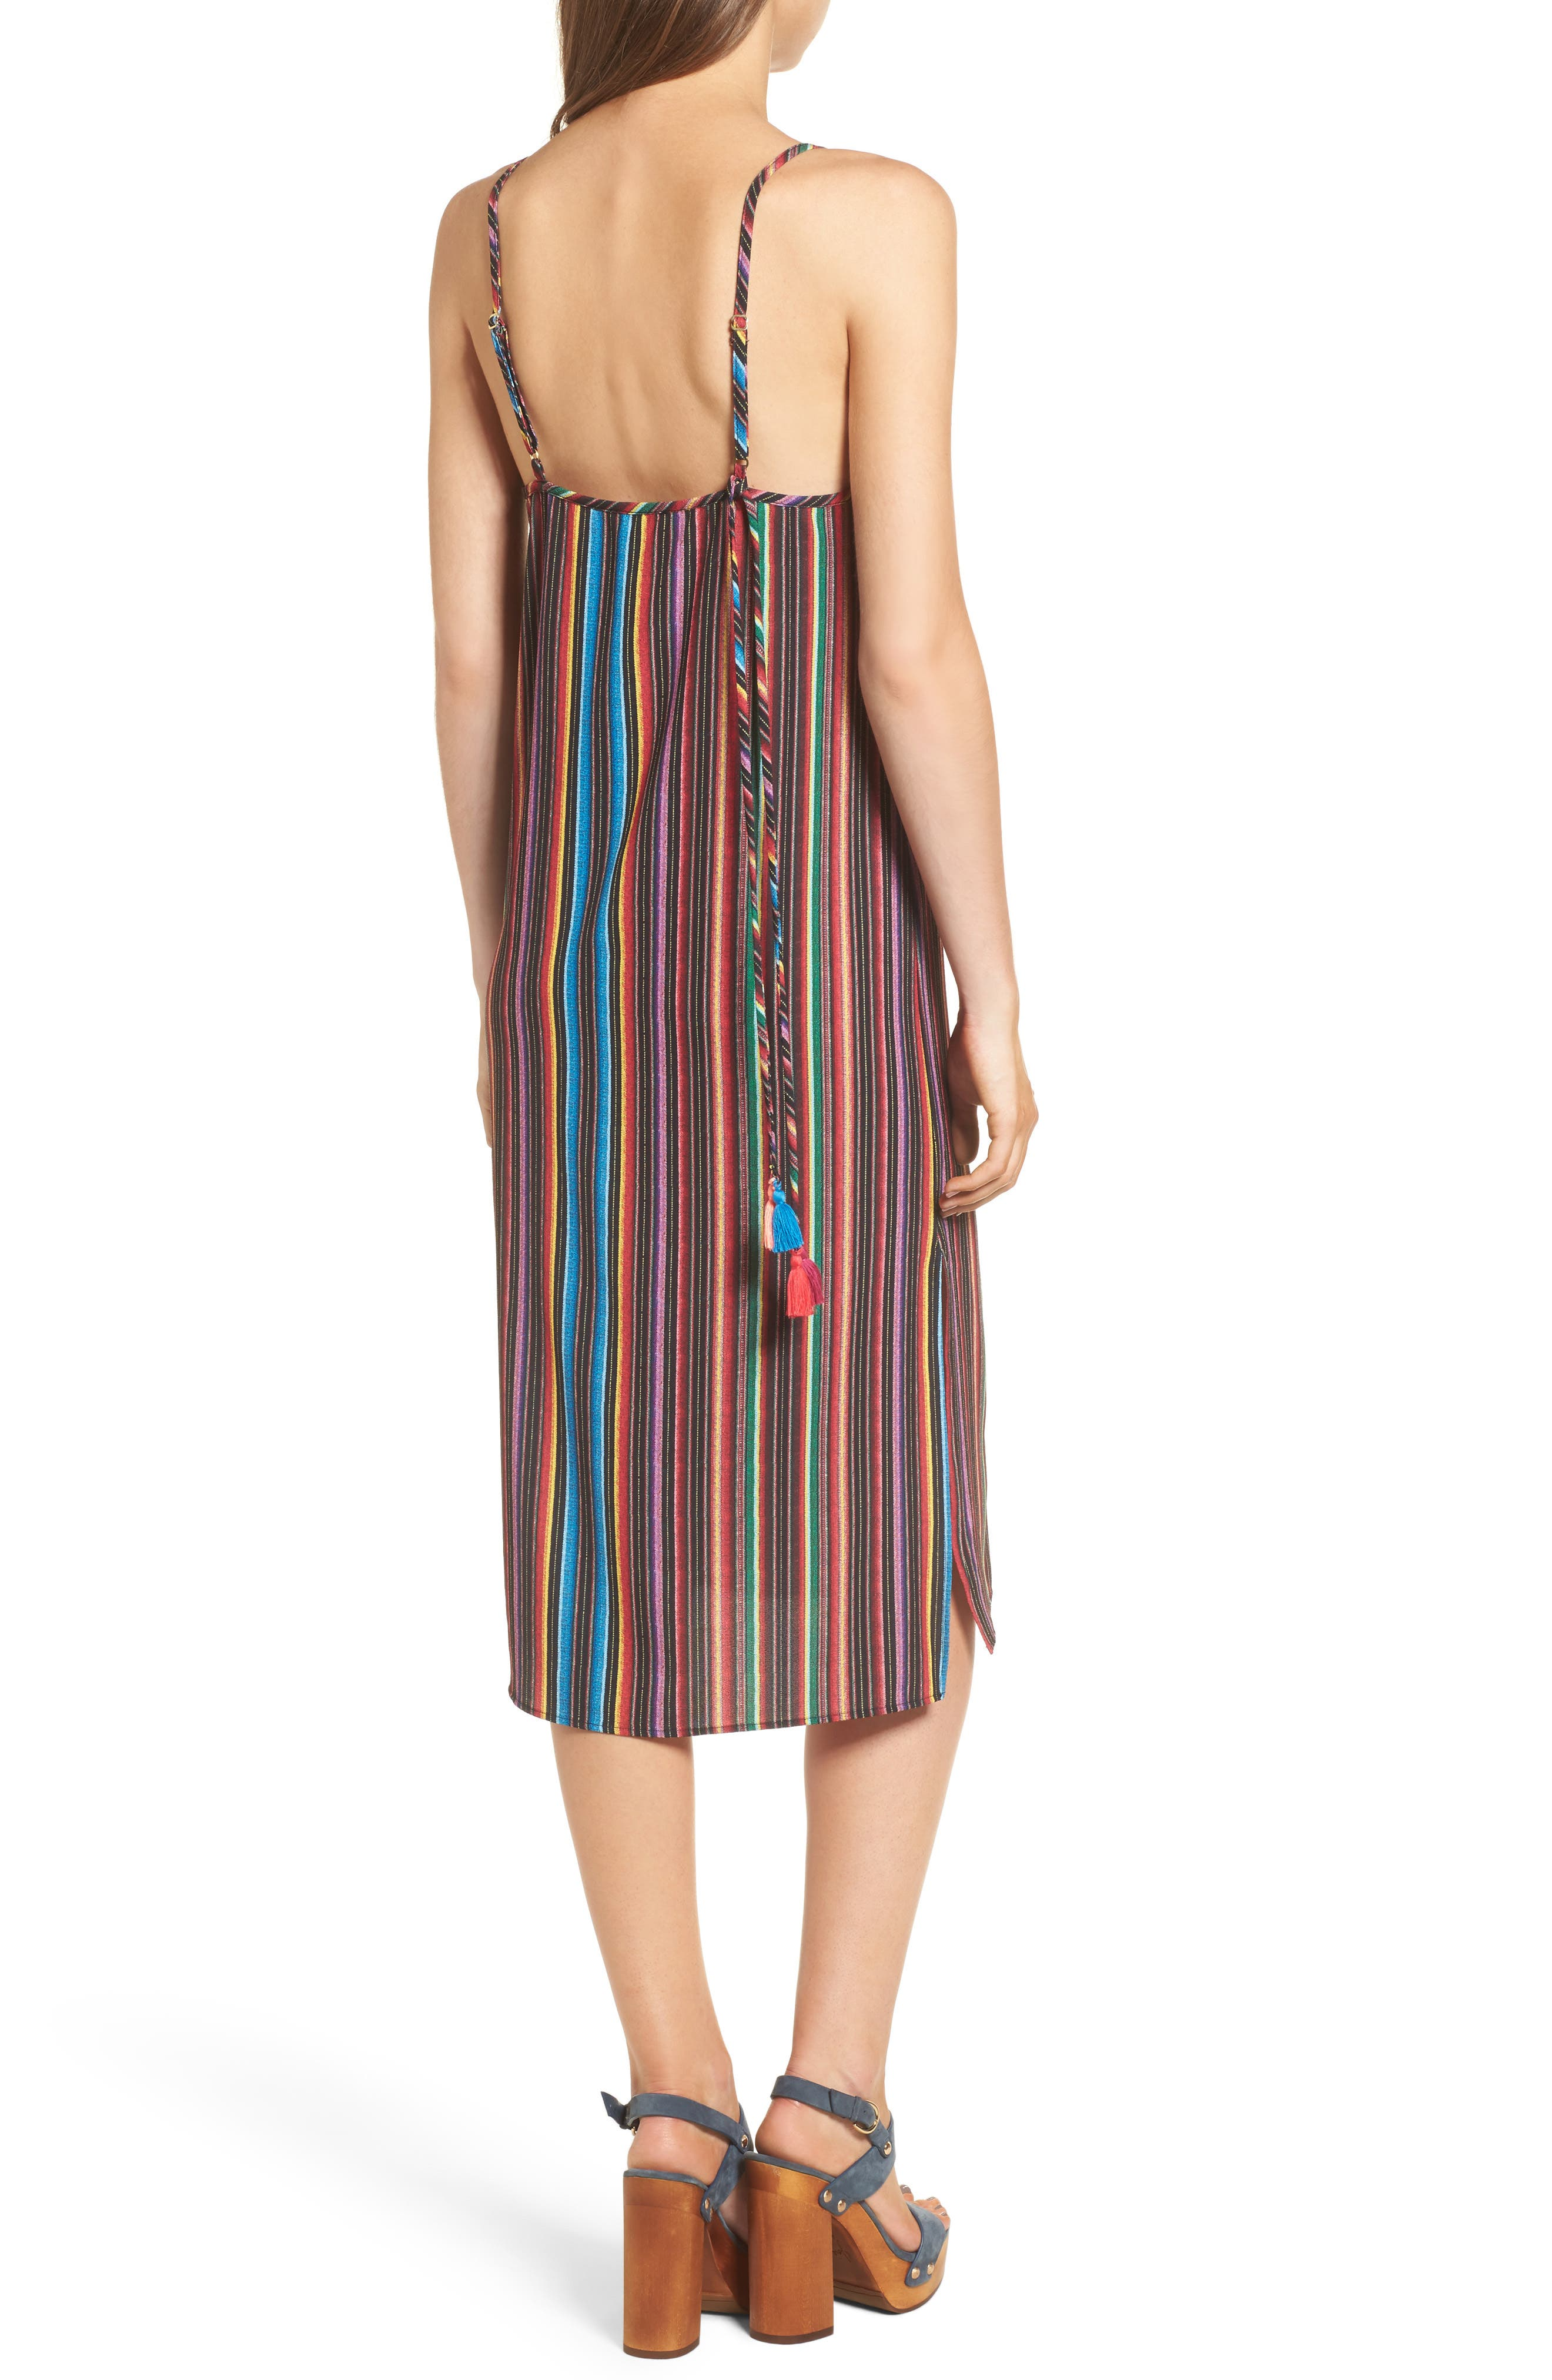 Shiloh Tassel Slipdress,                             Alternate thumbnail 2, color,